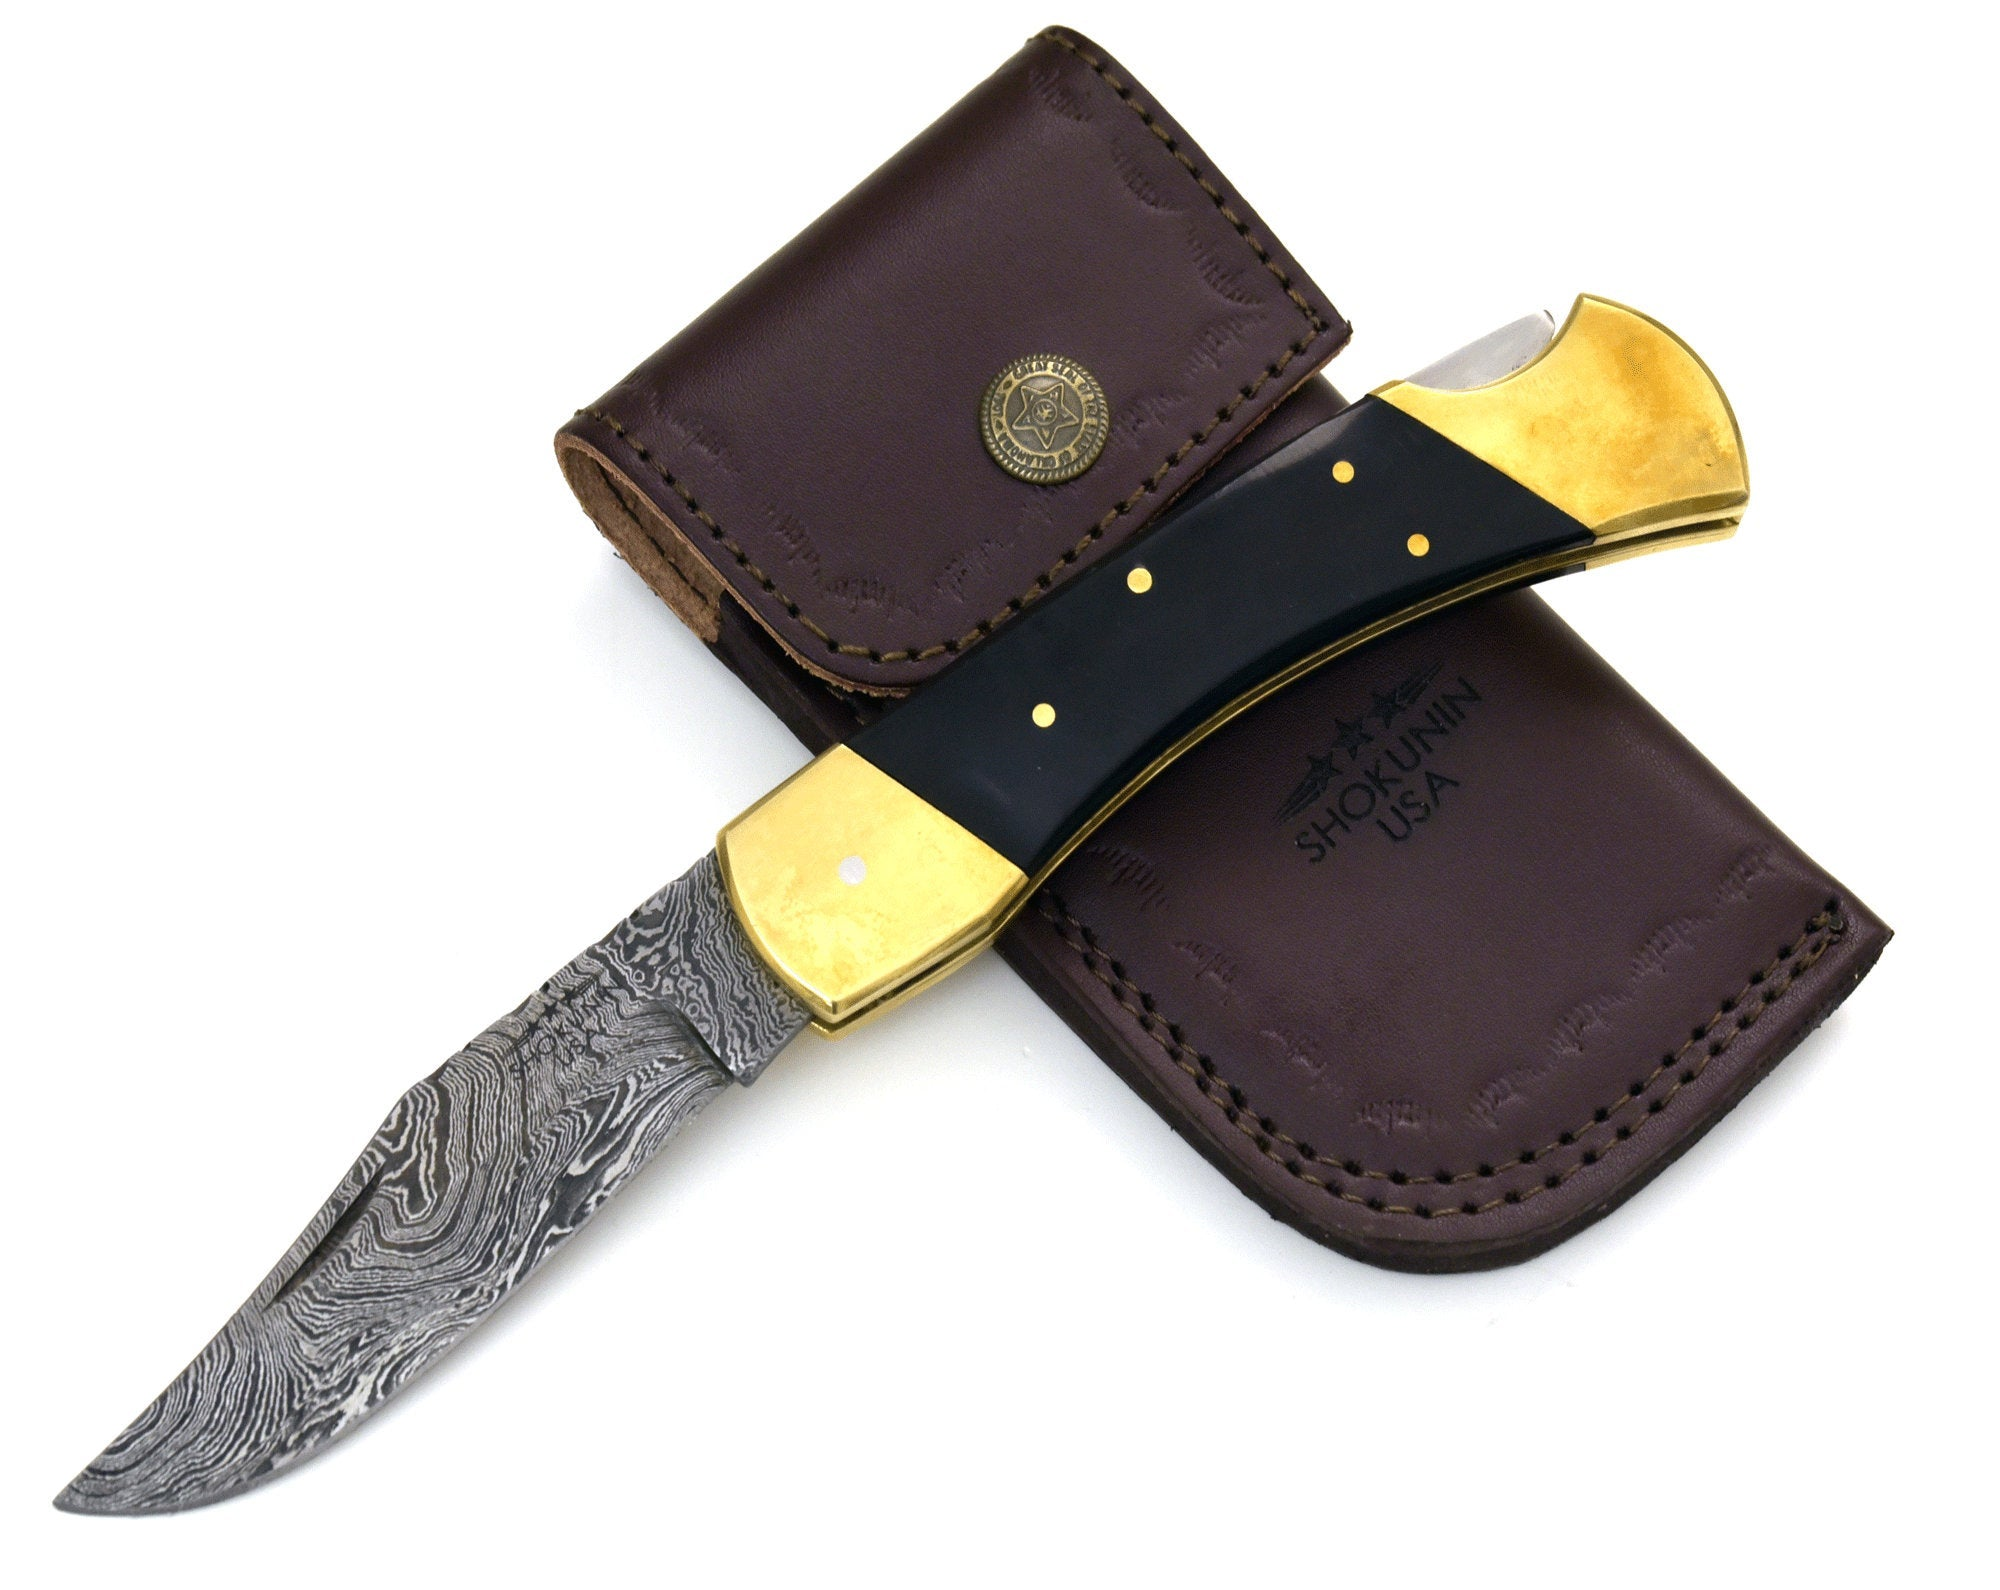 "DAMASCUS Knife, Folding knife, Pocket knife, EDC damascus steel hunting utility knife tactical camping knife 8.75"" Every day carry HORN - SHOKUNIN USA"